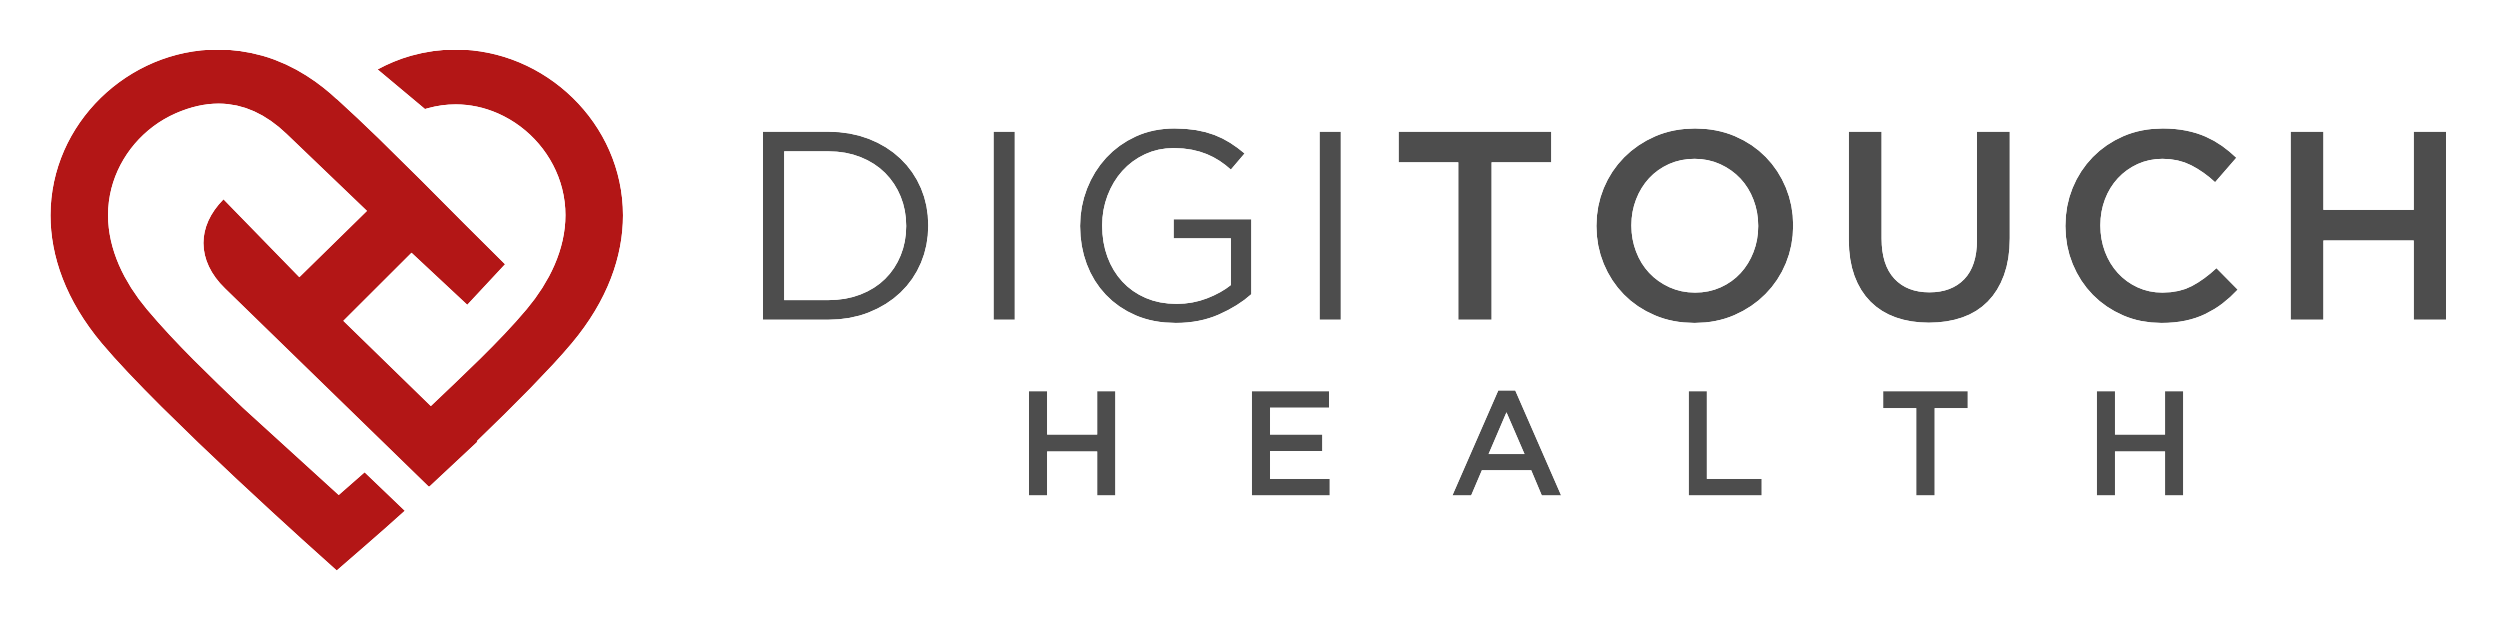 Digitouch Health